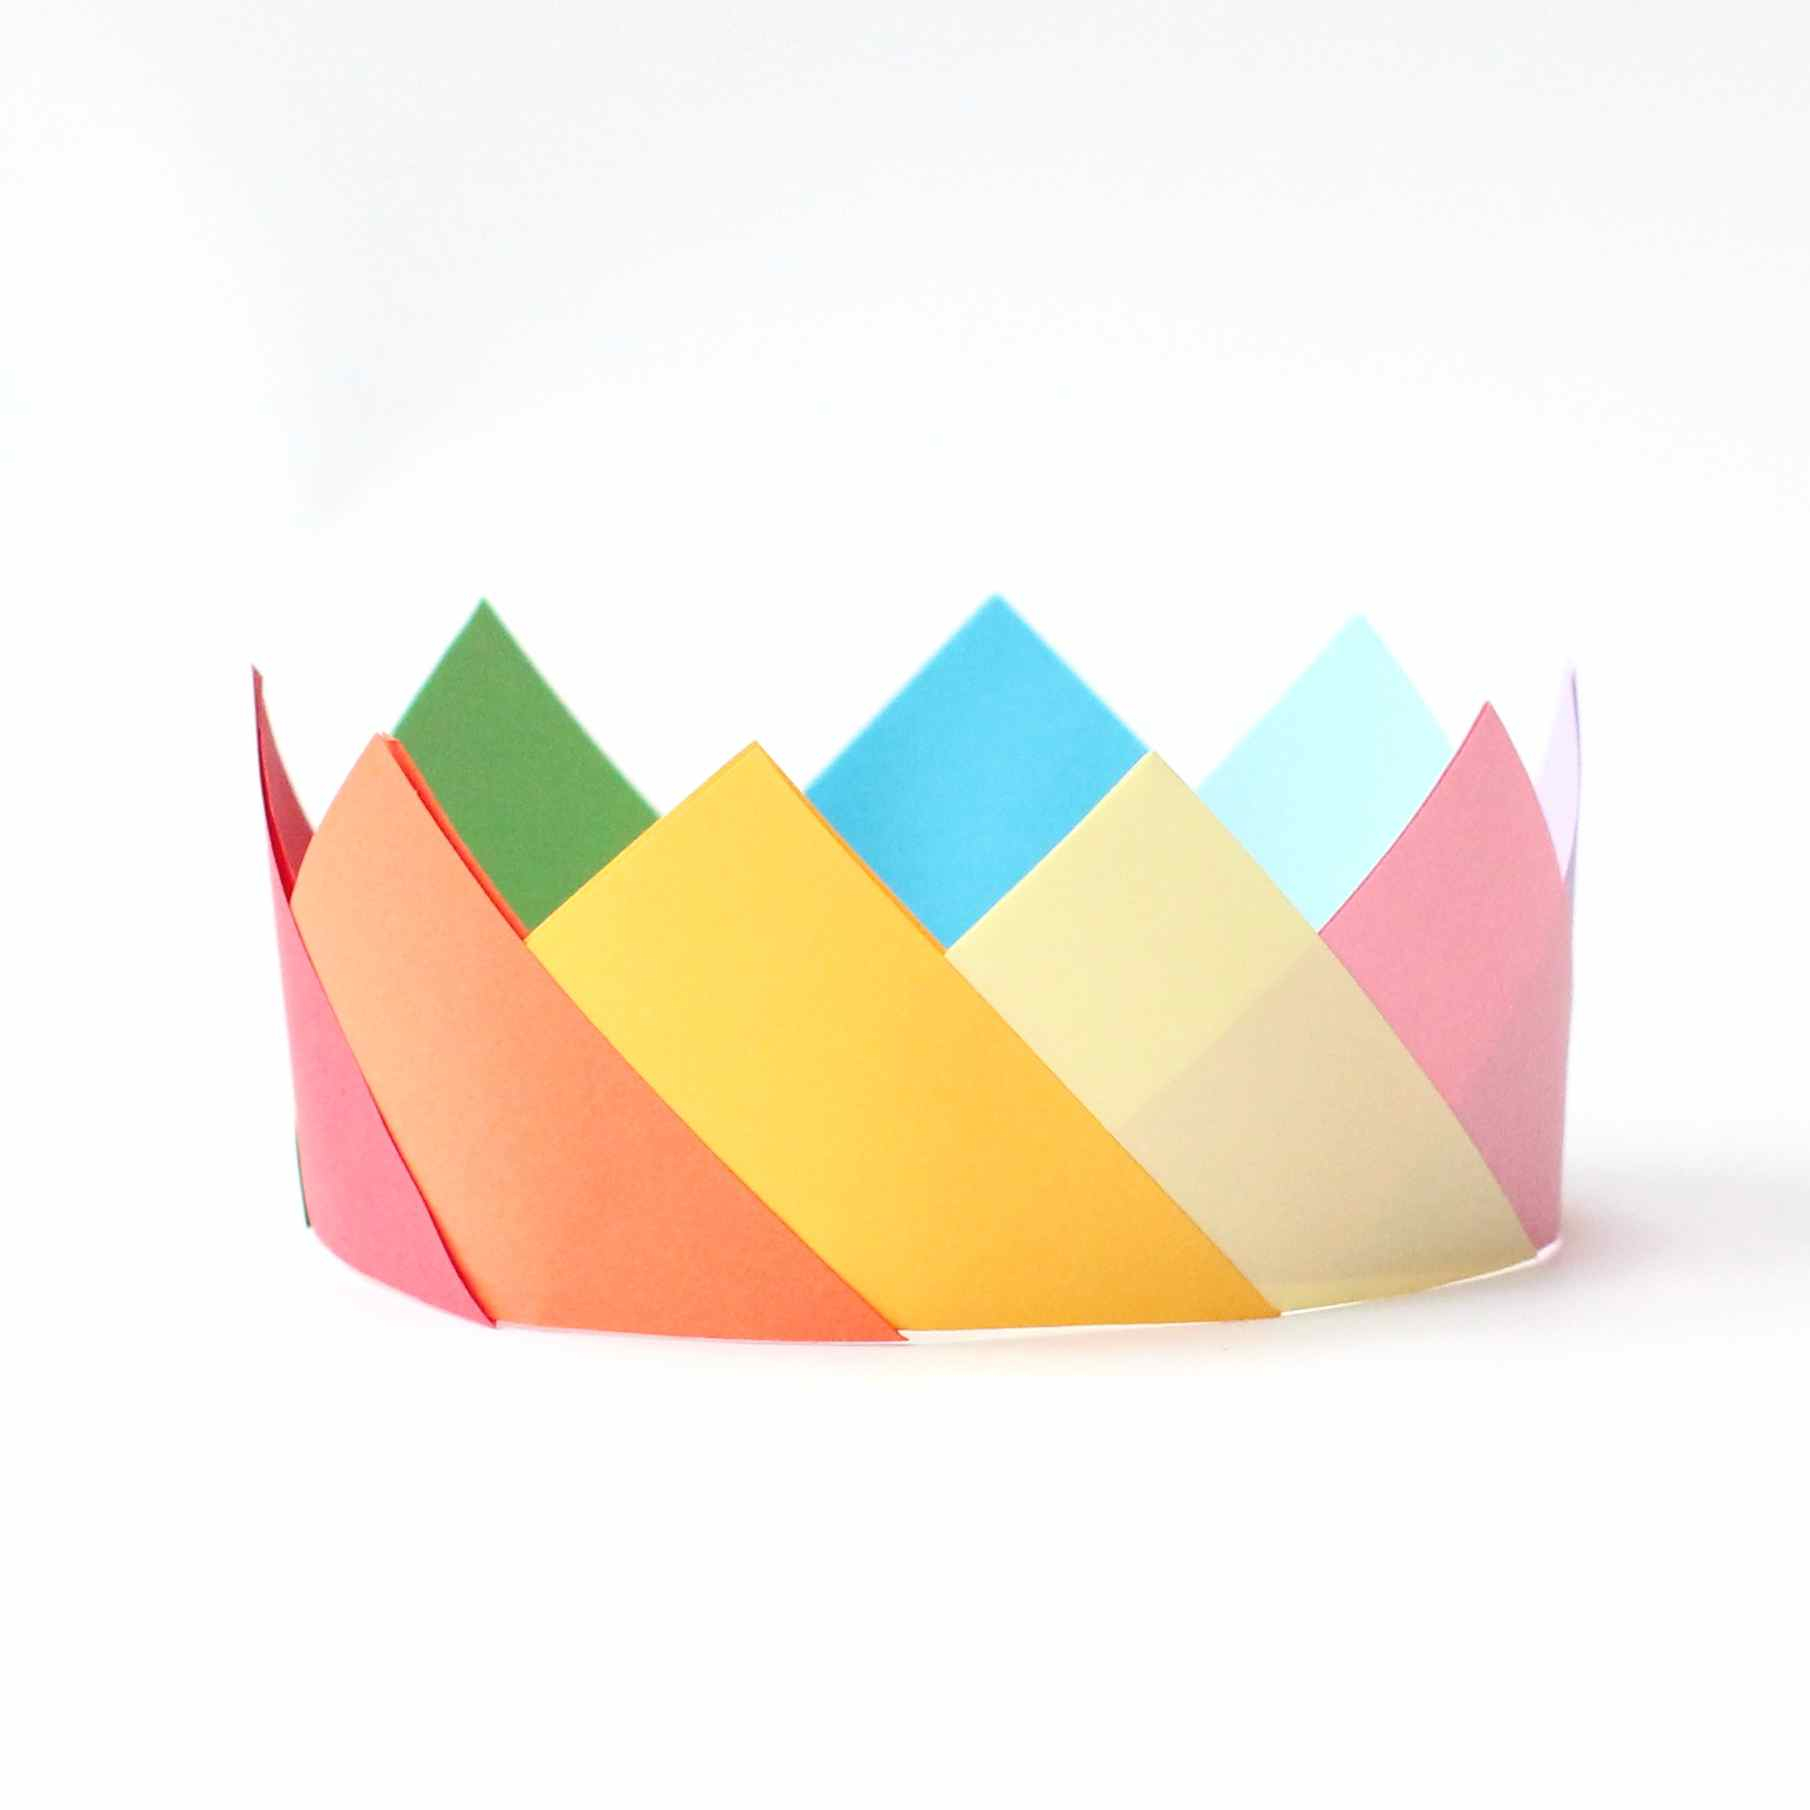 Origami Paper Images Simple Origami Crowns